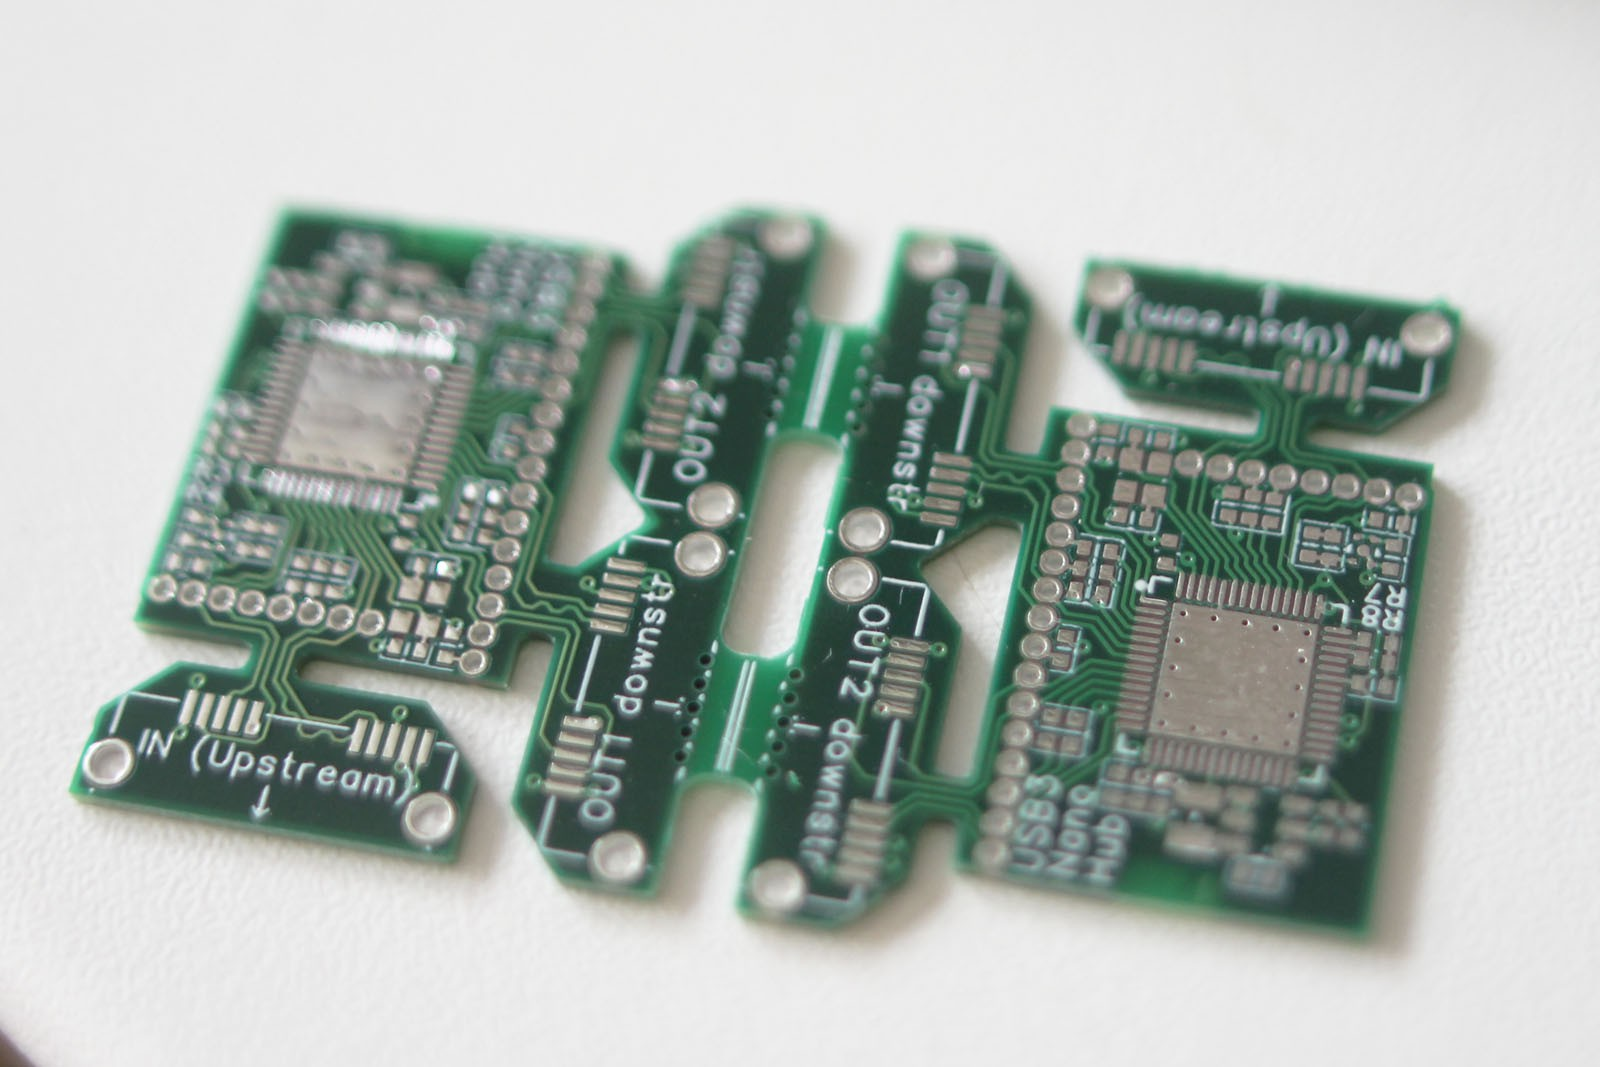 Nanohub Tiny Usb 20 And 30 Hubs Splitter Schematic 31 Rev1 Boards Are In